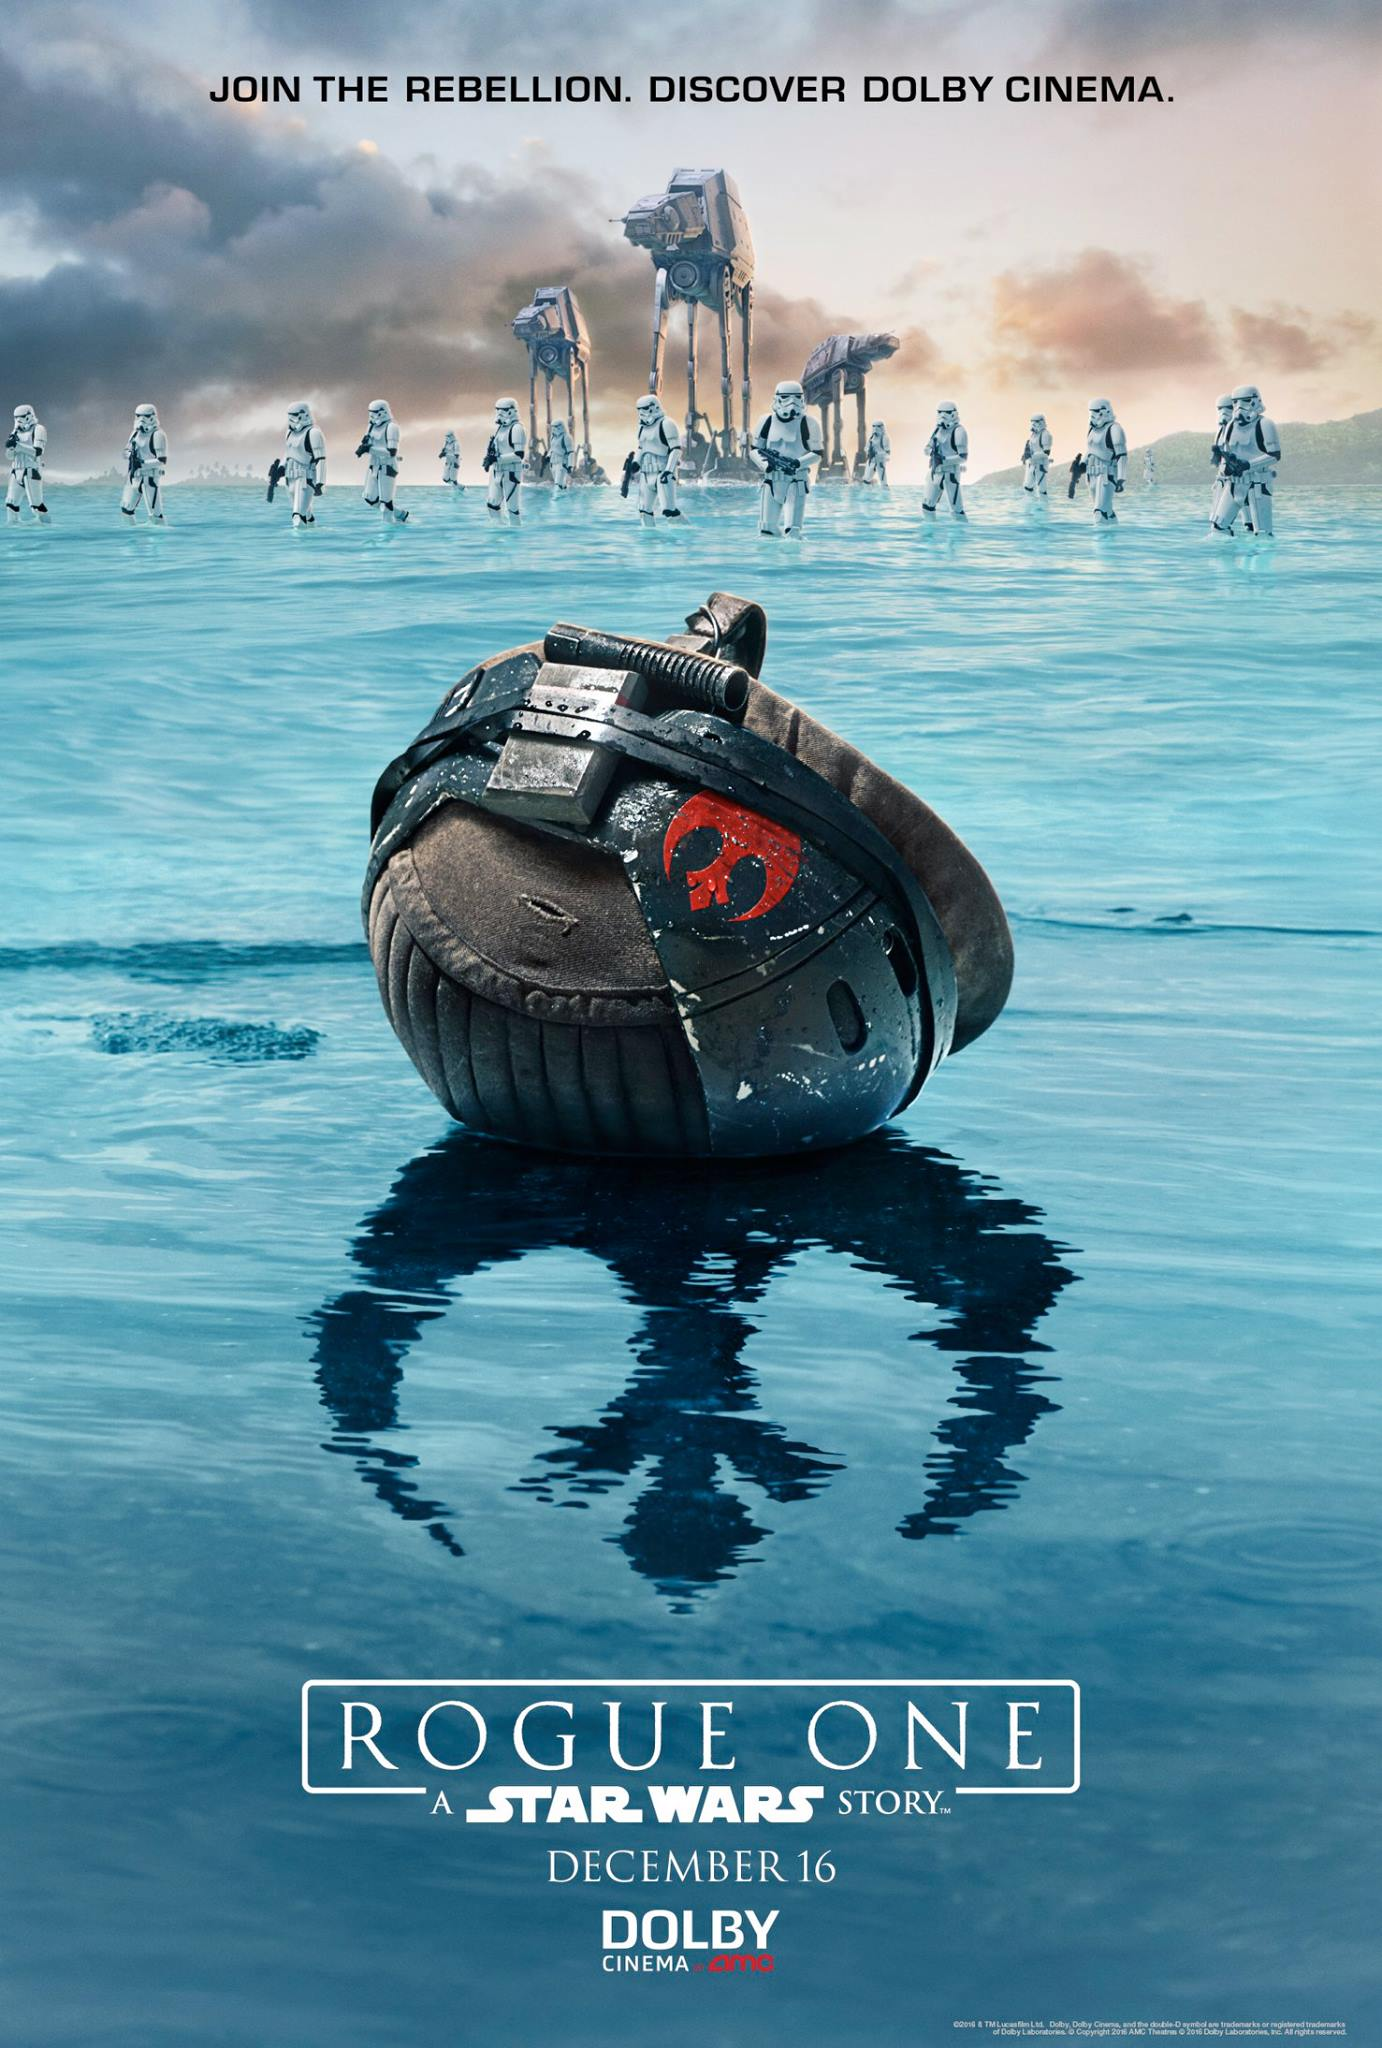 201611_rogue-one-star-wars-story-dolby-cinema-poster-1